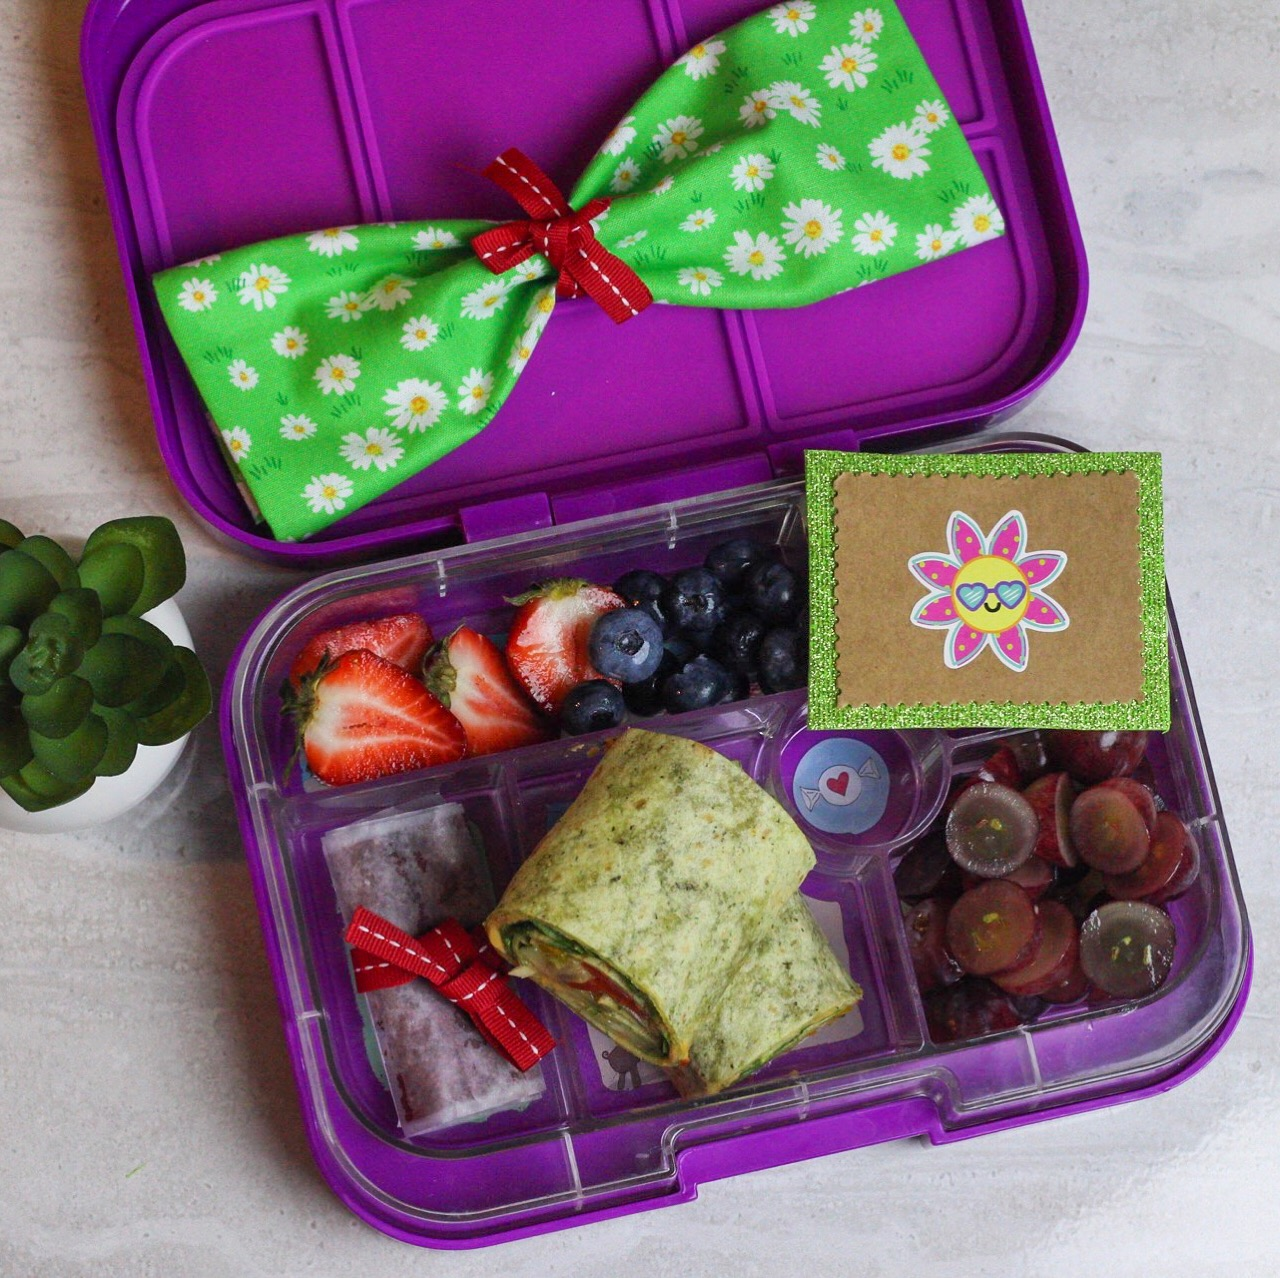 a homemade fruit roll up is in this lunch! - Spinach veggie wrap (cucumbers,tomatoes,onions,spinach,hummus, sweet peppers, seasoning), homemade fruit roll up, grapes, strawberries, and blueberries!